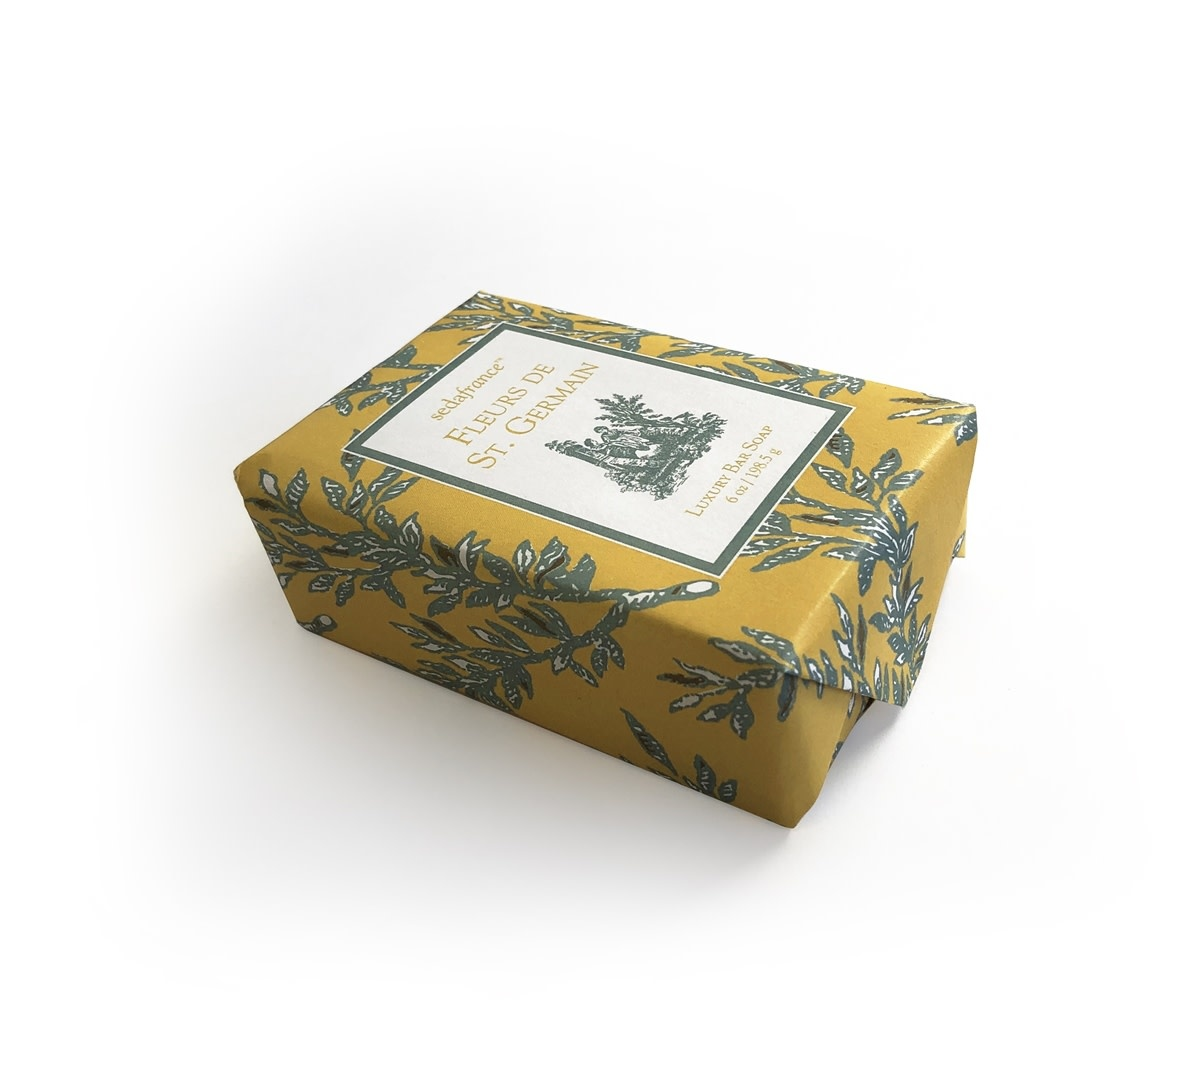 Seda France Fleurs de St. Germain Classic Toile Paper-Wrapped Bar Soap